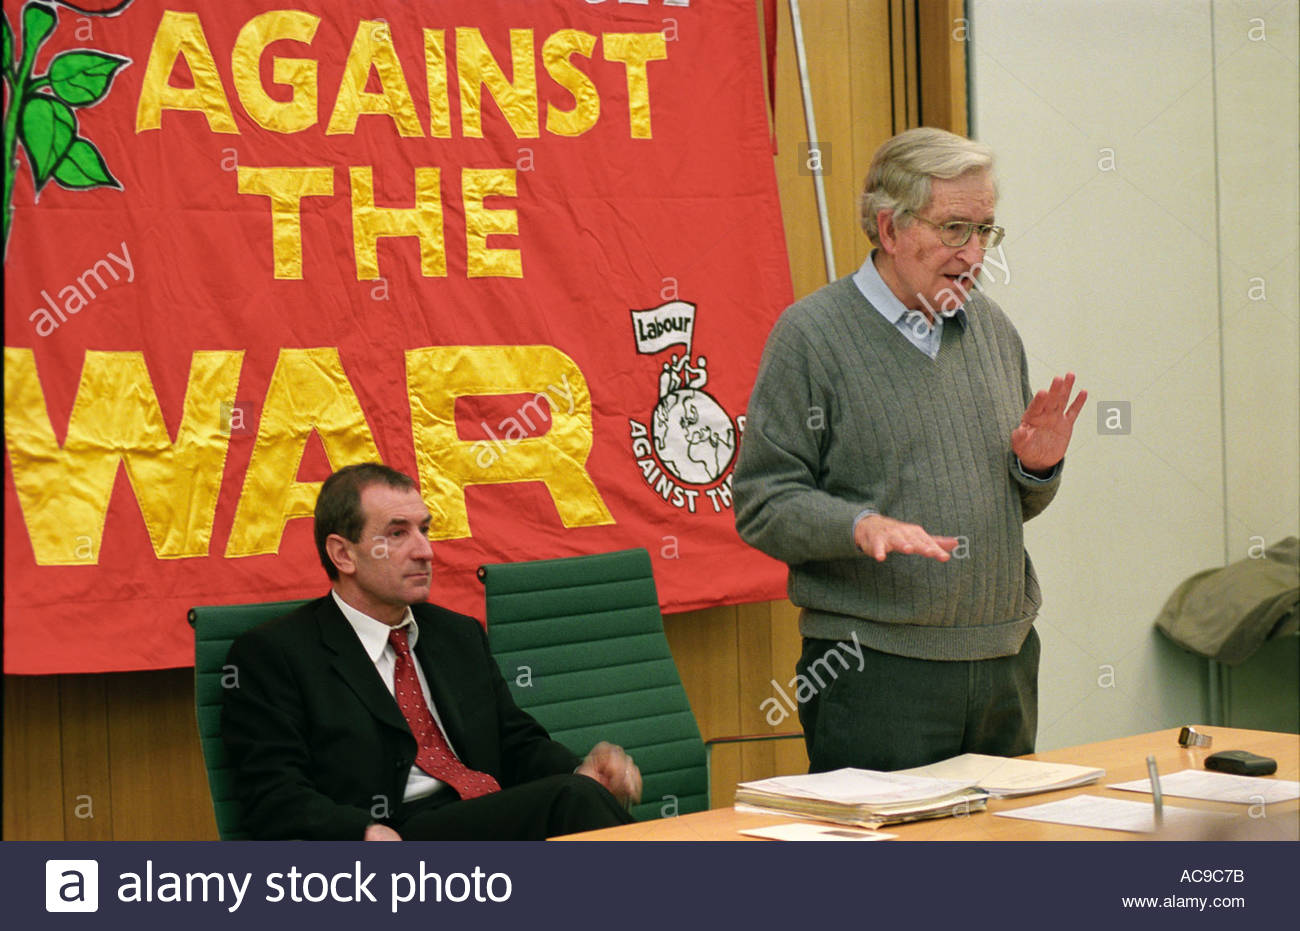 Noam Chomsky speaking at Stop the War in Iraq meeting Labour MP Alan Simpson on left London 10 December 2002 UK - Stock Image